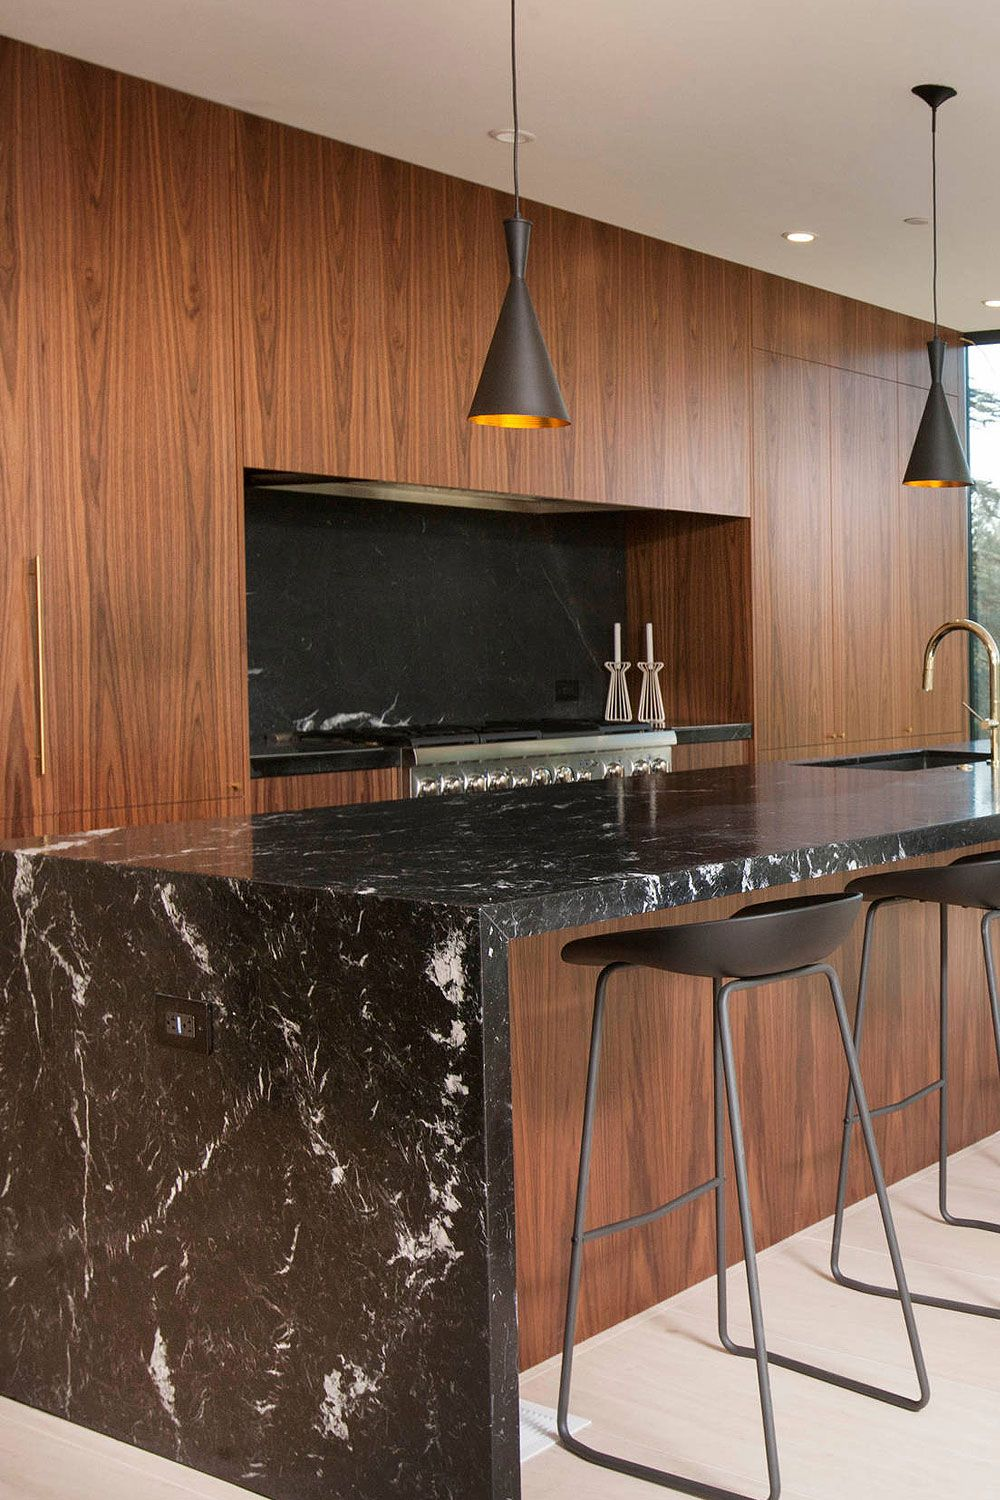 50+ Black Countertop Backsplash Ideas (Tile Designs, Tips ... on Backsplash Ideas For Black Countertops  id=68323